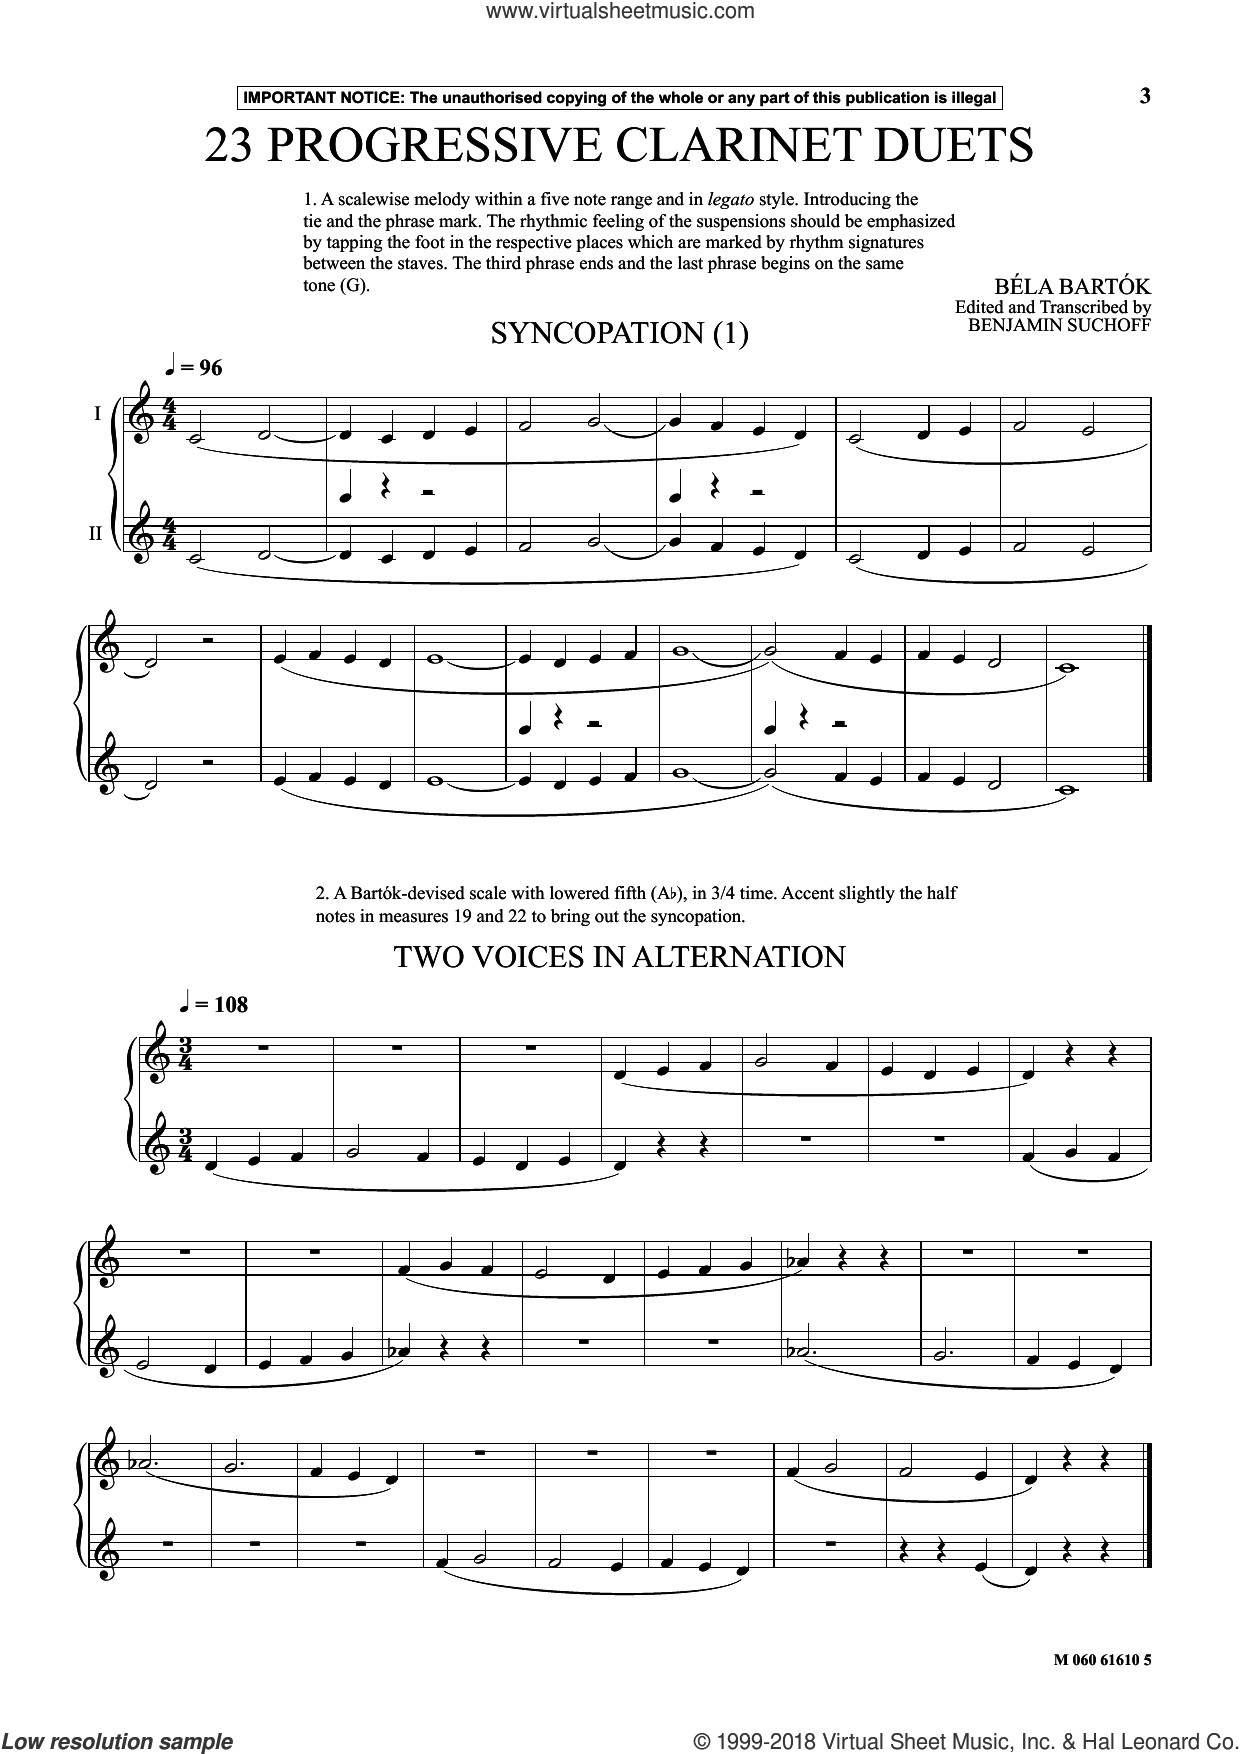 23 Progressive Clarinet Duets (from Mikrokosmos) sheet music for two clarinets (duets) by Bela Bartok, Bela Bartok and Benjamin Suchoff, classical score, intermediate skill level